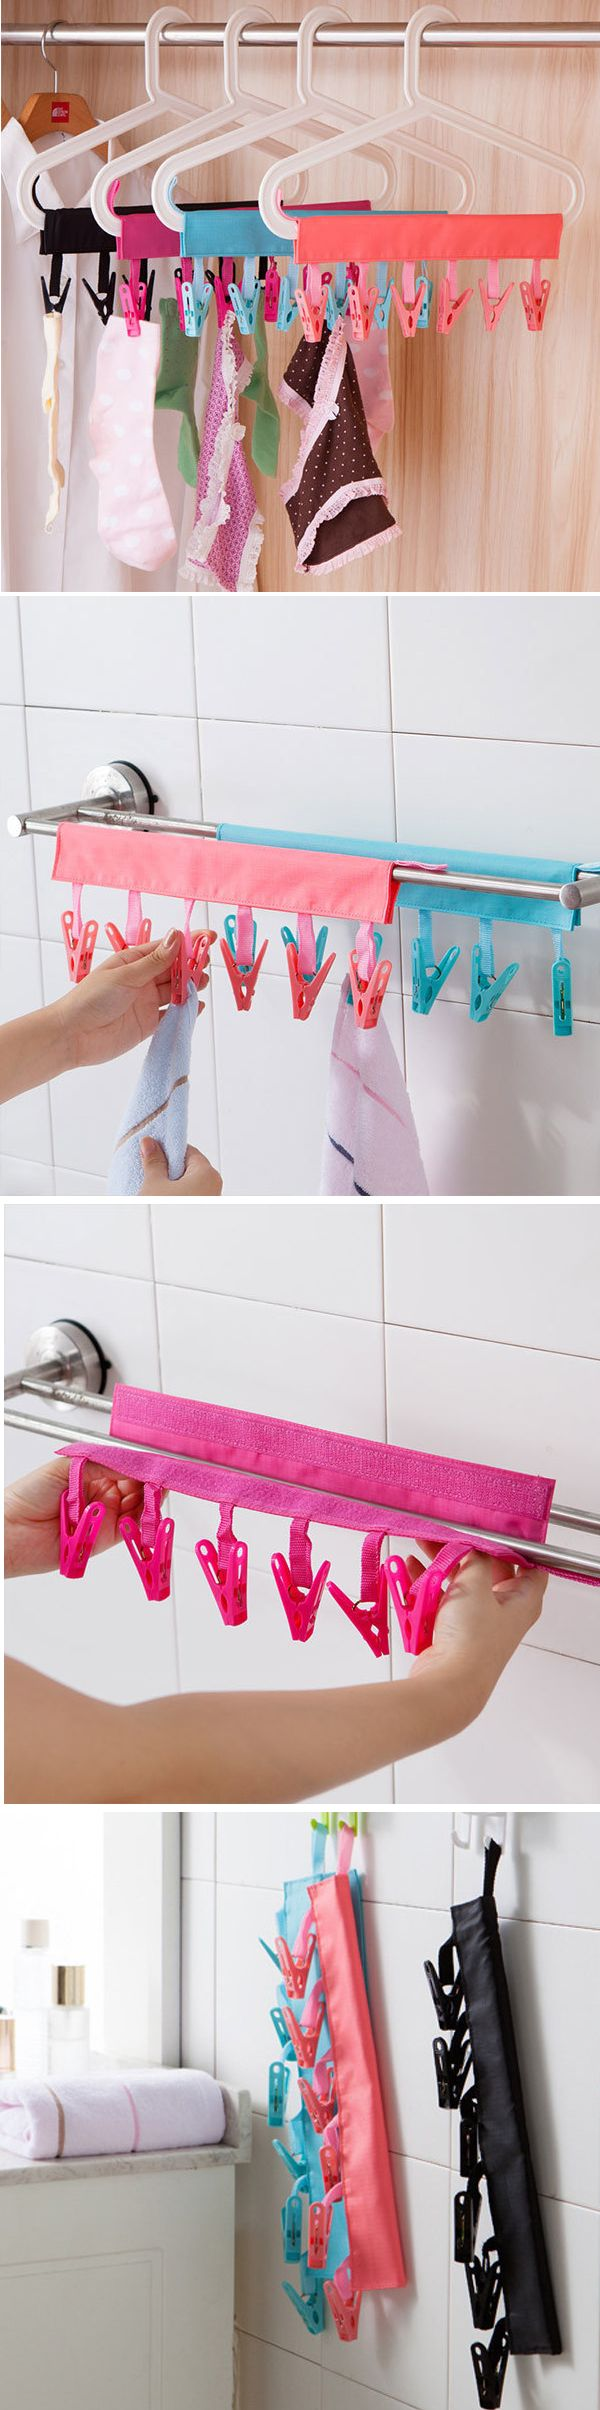 US$4.10 Portable Folding Clothes Storage Hanger Rack Creative Cloth Clip Multifunctional Travel Clothespin